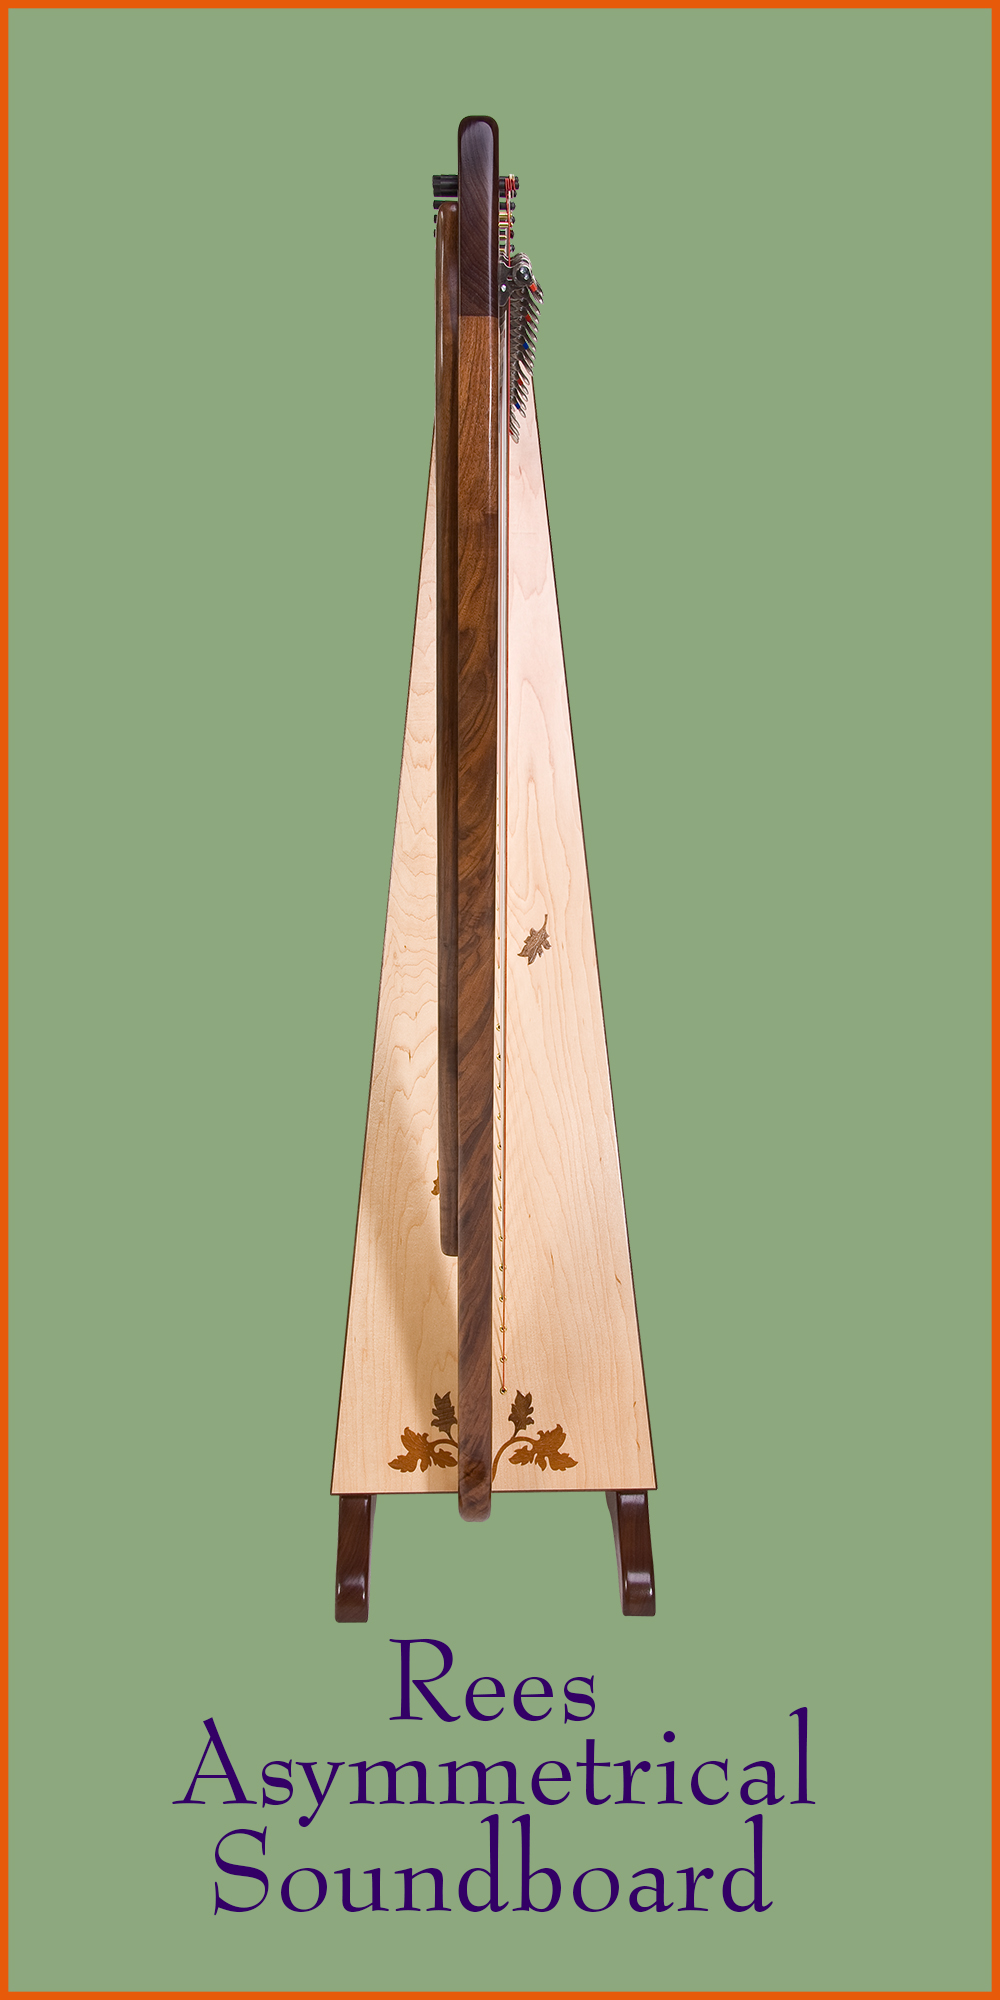 A Rees Aberdeen Meadows Concert Line Harp with an asymmetrical soundboard.